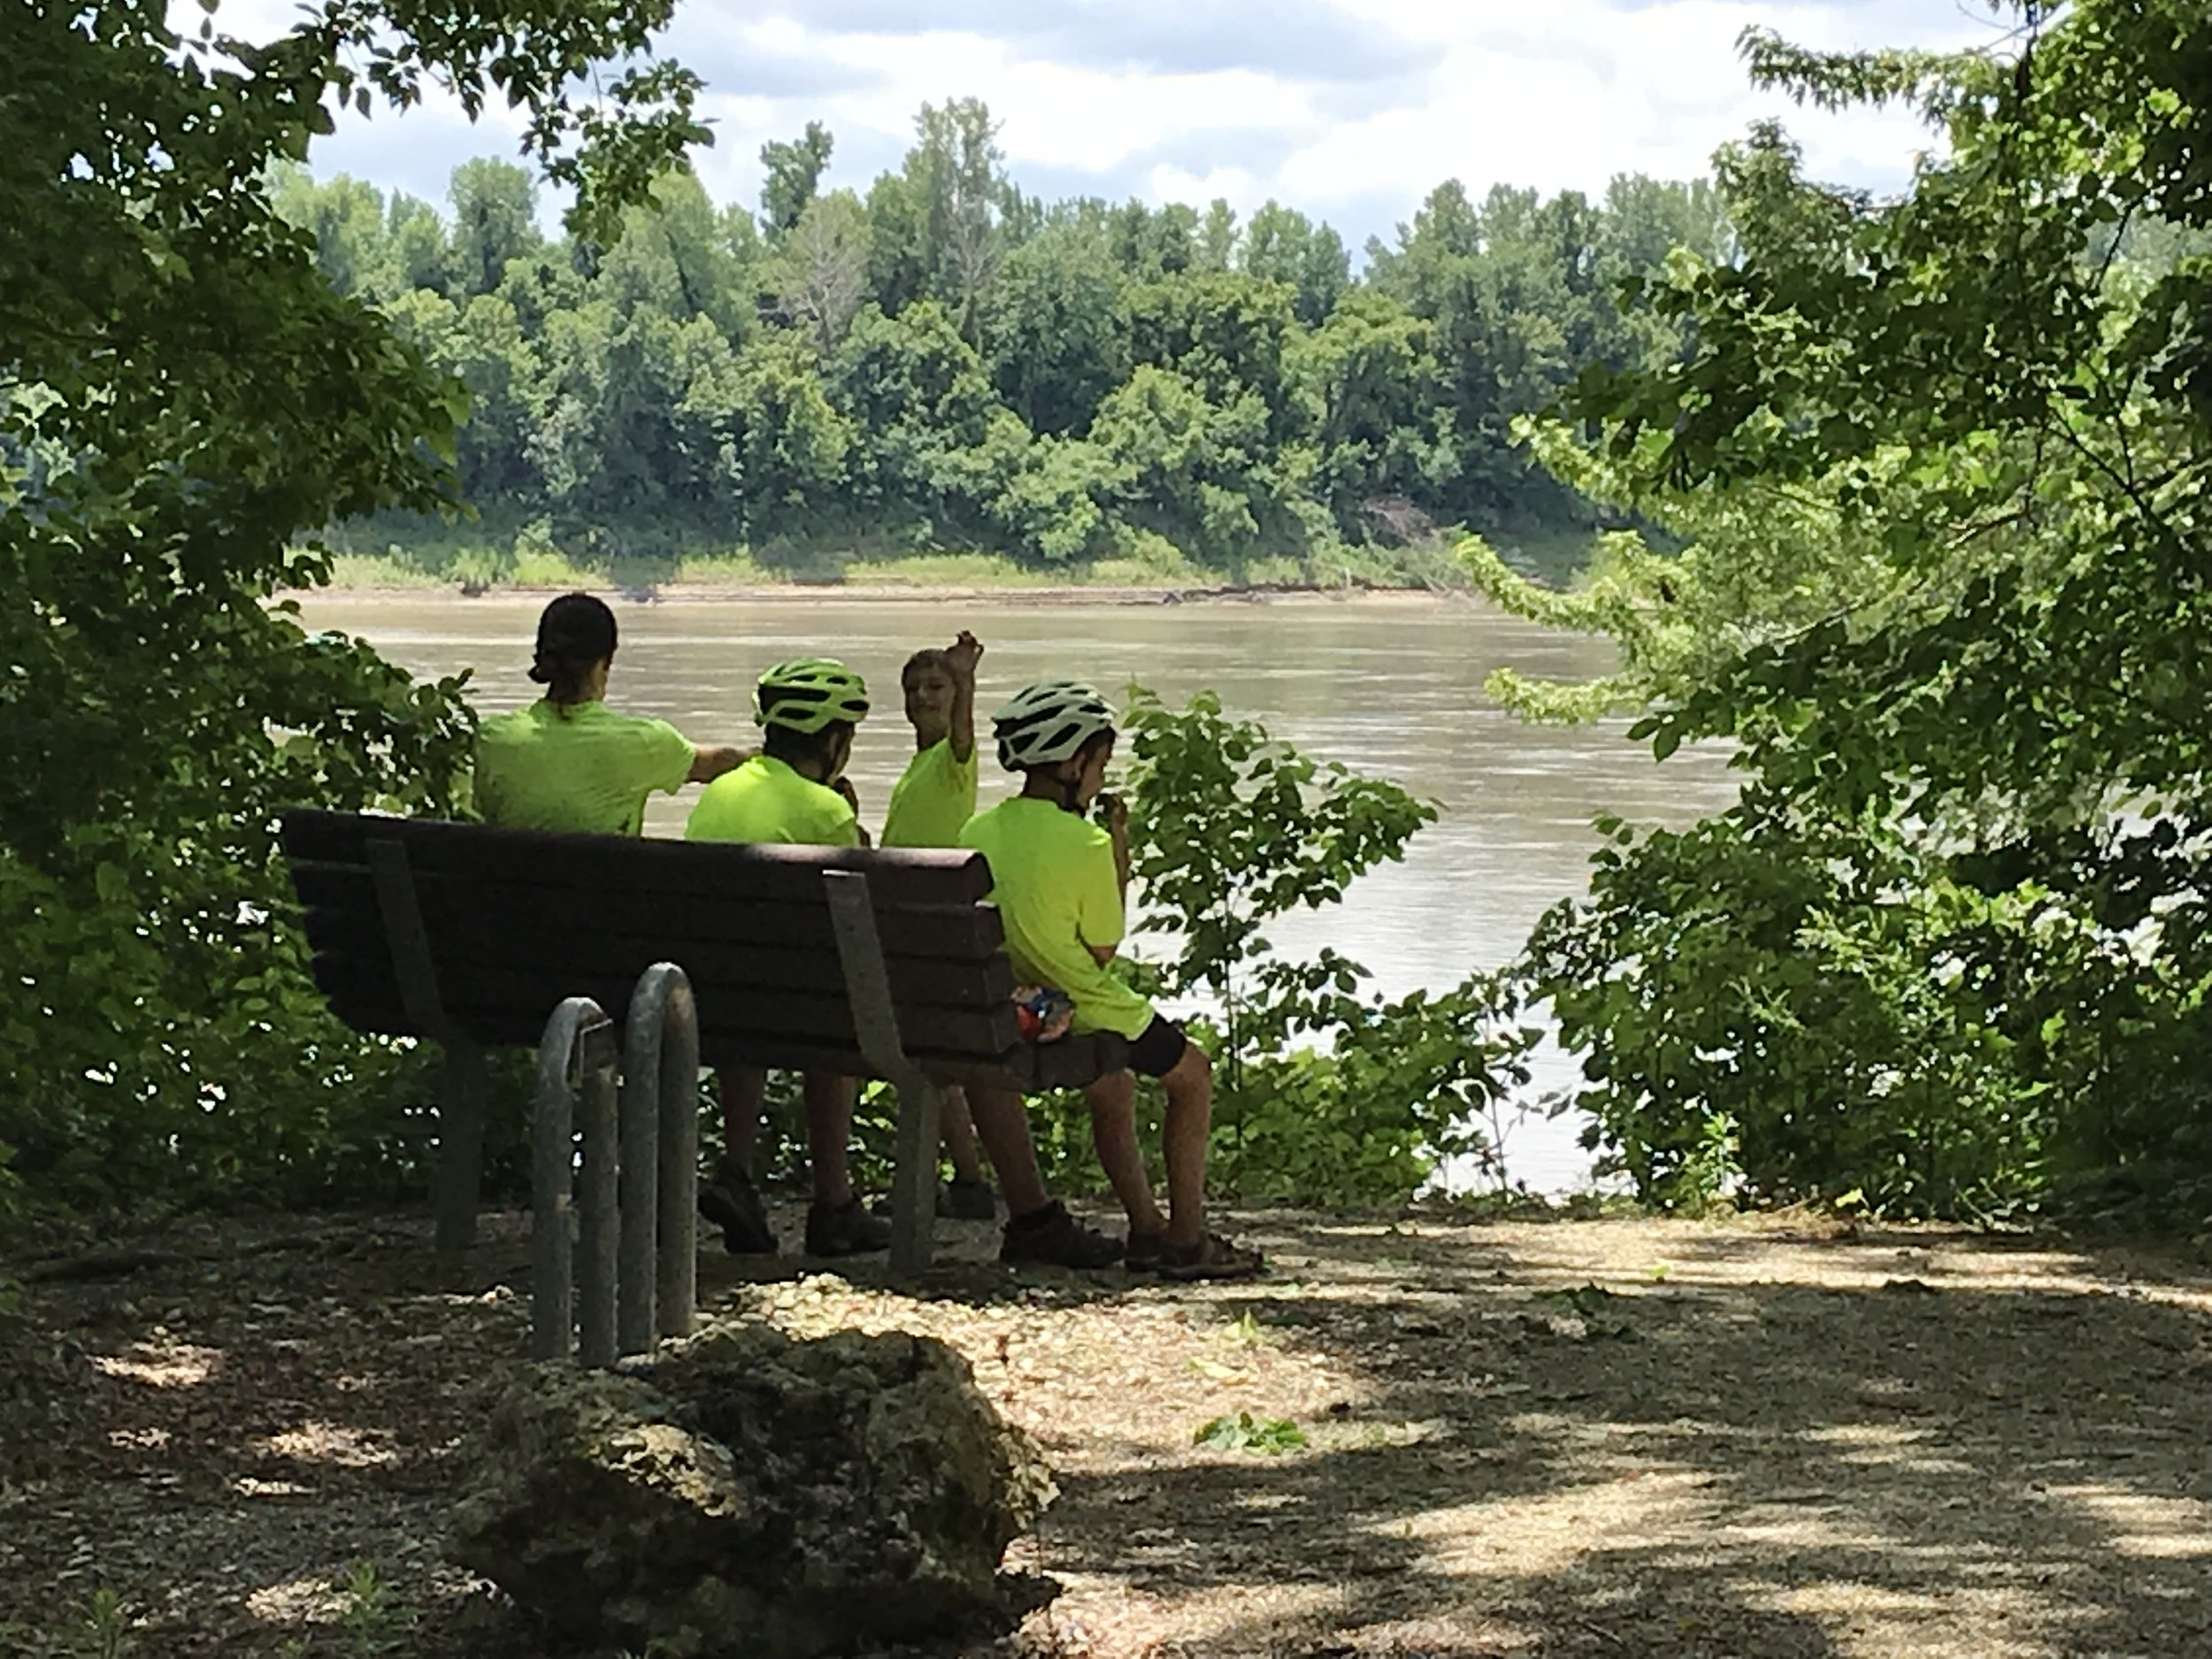 Stopped for lunch along the Katy Trail at this beautiful spot overlooking the Missouri River. Just across is likely where Lewis and Clark stepped foot as they were on their journey west.